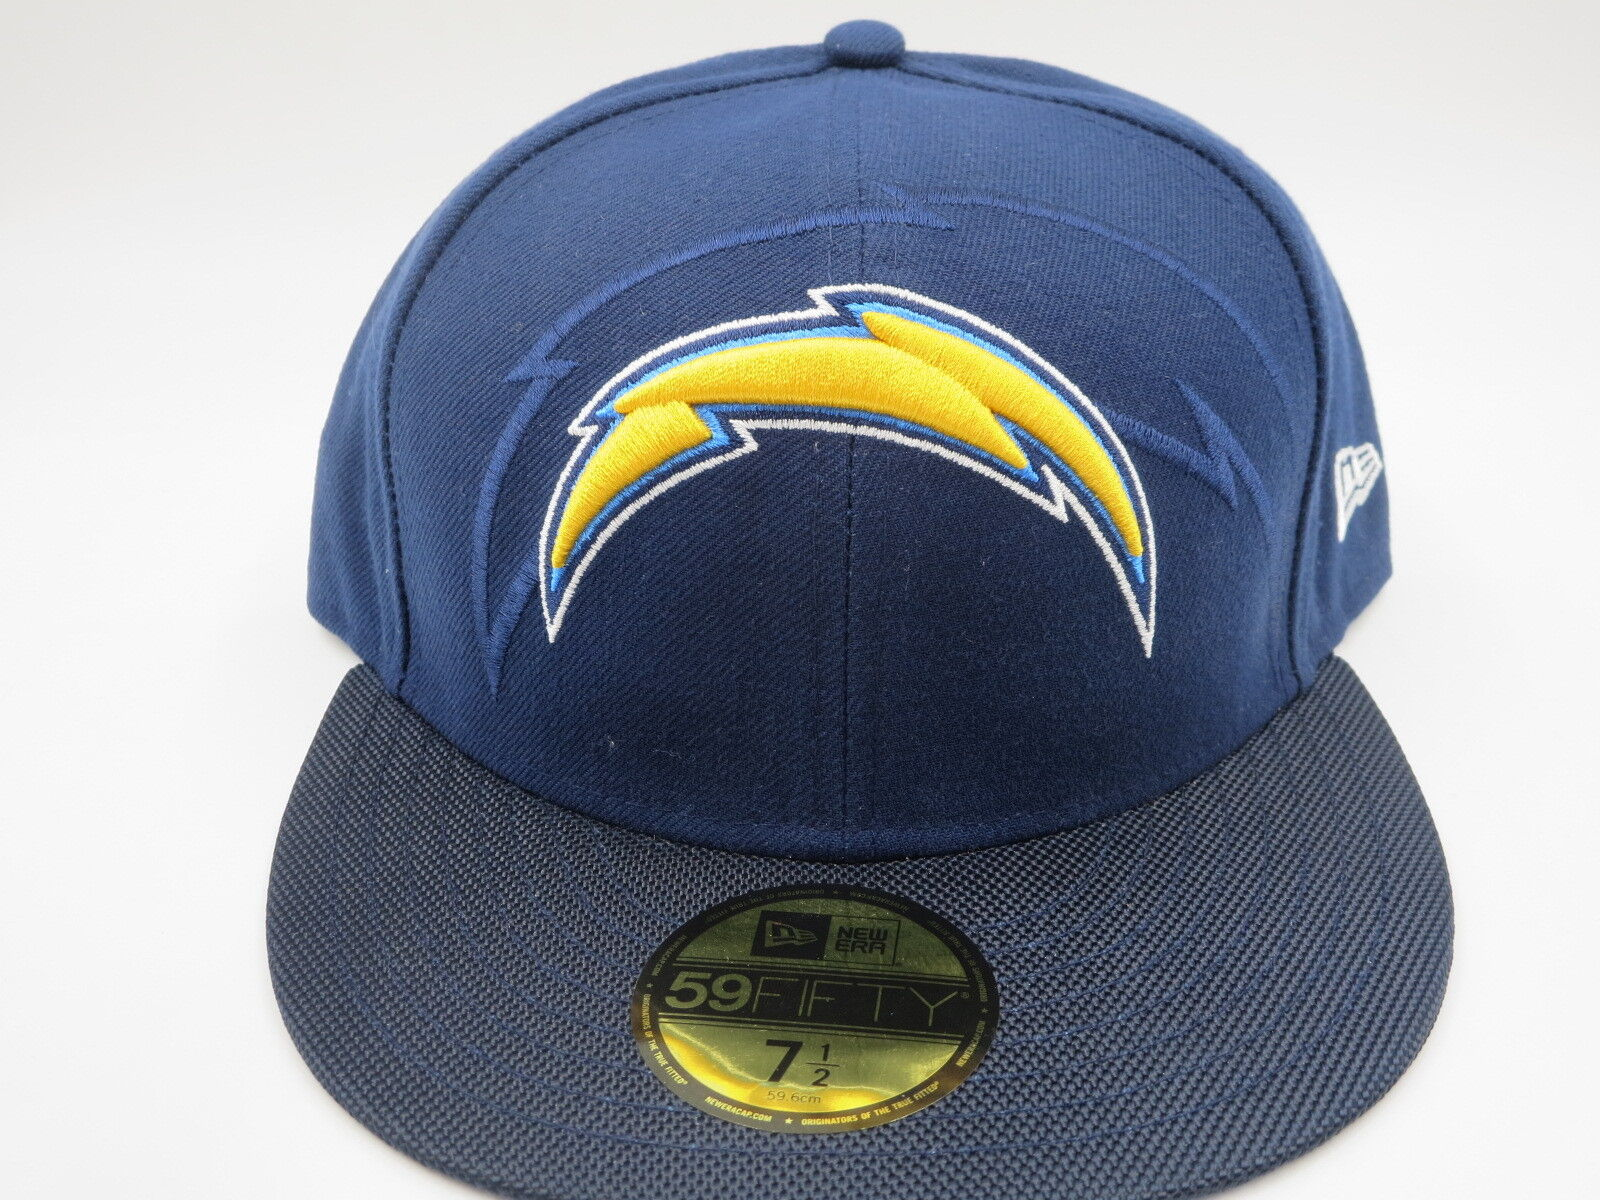 San Diego Chargers Blue New Era NFL 2016 Sideline Sideline Sideline 59FIFTY Fitted Hat Cap 0583d0